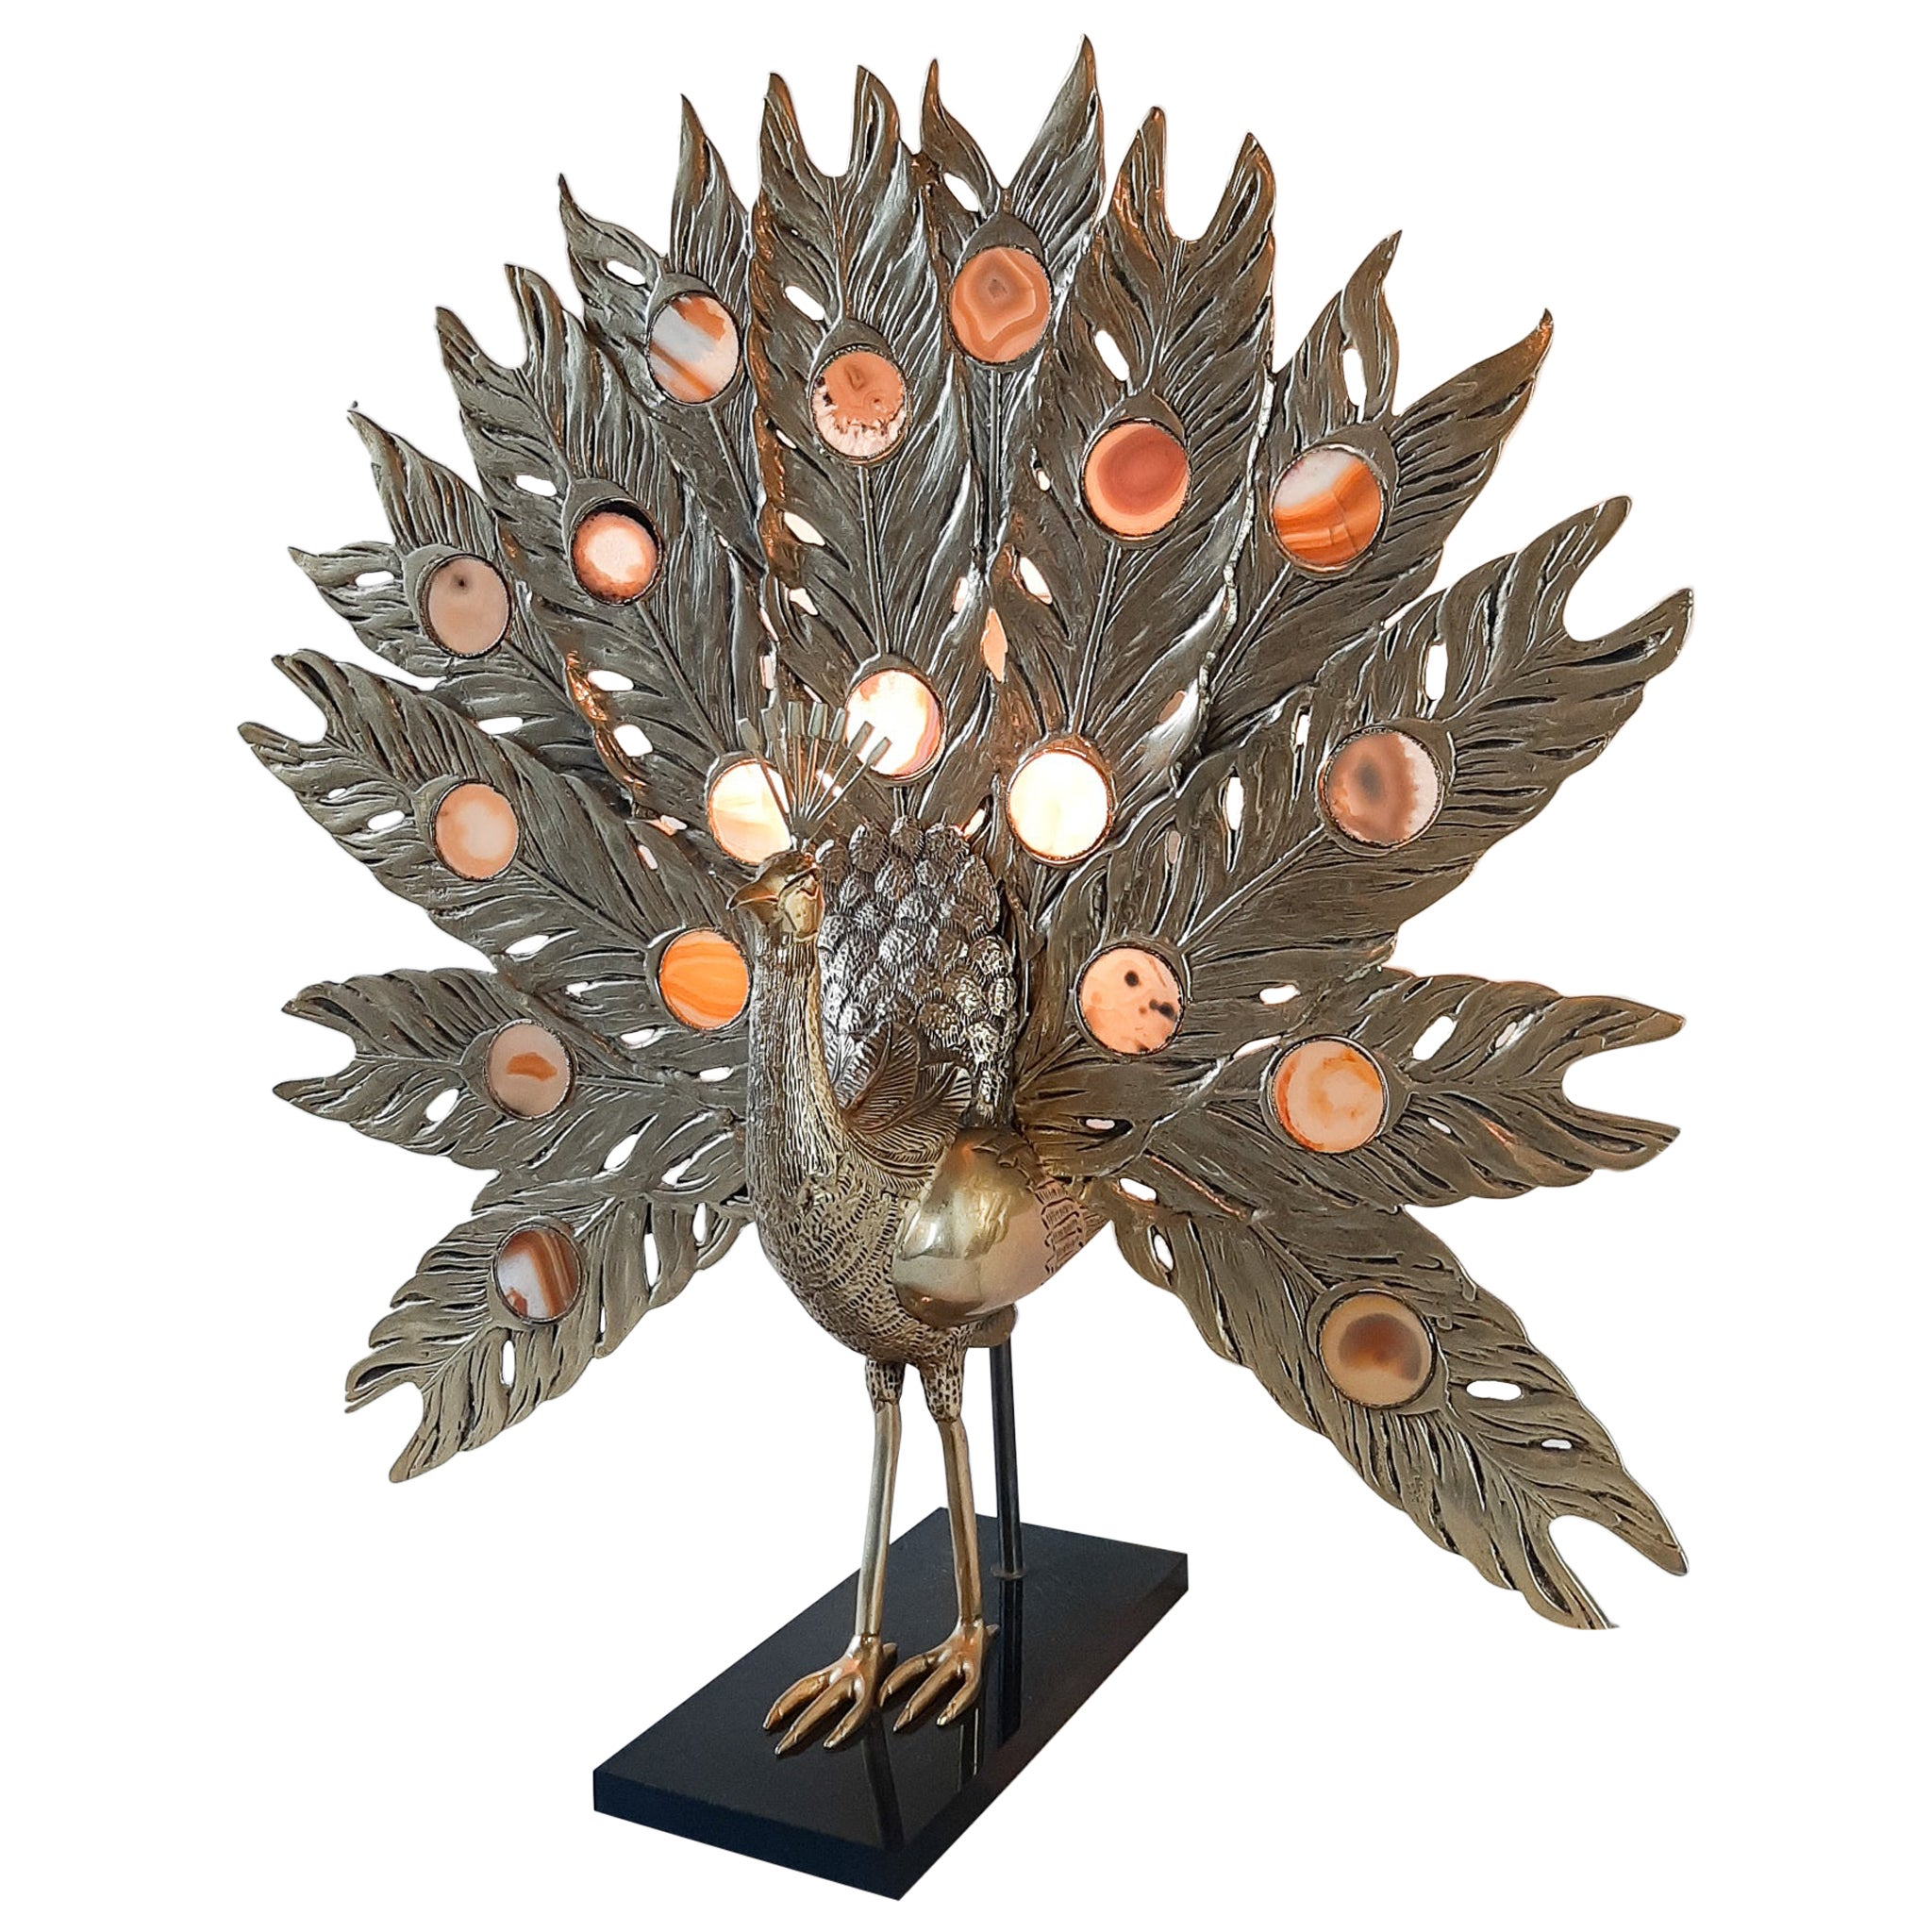 Willy Daro Peacock Brass and Agate Table Lamp Sculpture 1970s, Large Model